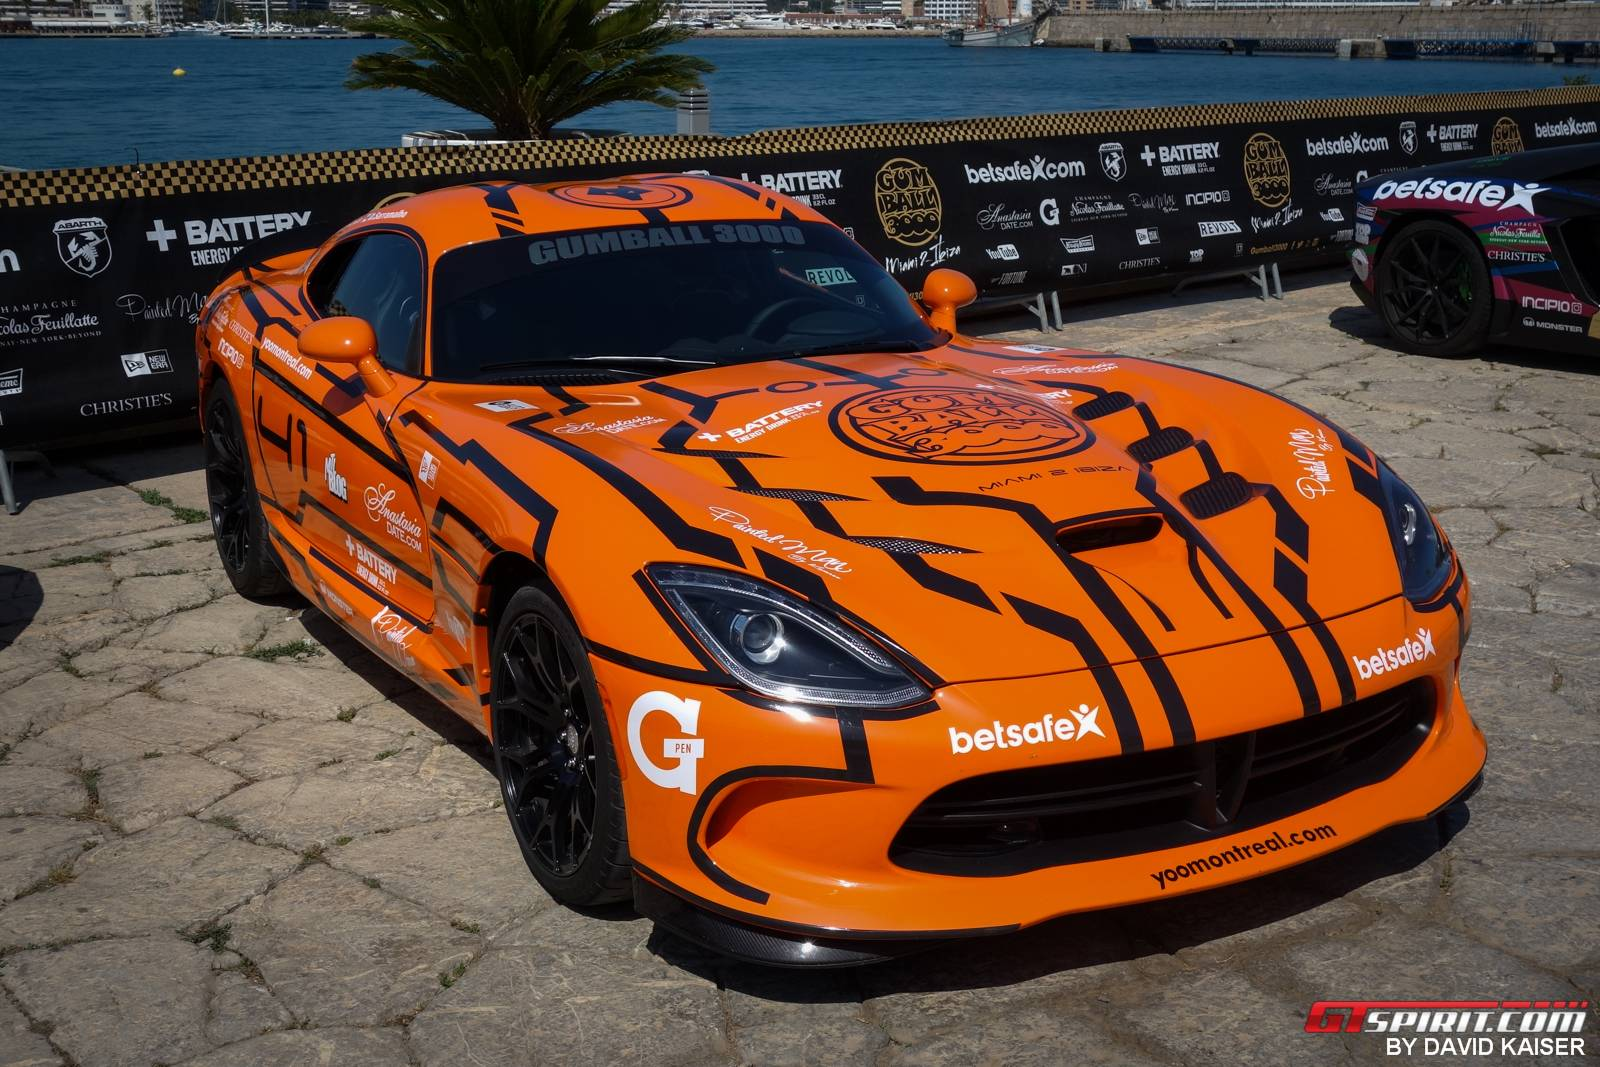 Cars For 3000: Gallery: 2014 Gumball 3000 Retreat To Destino Resort